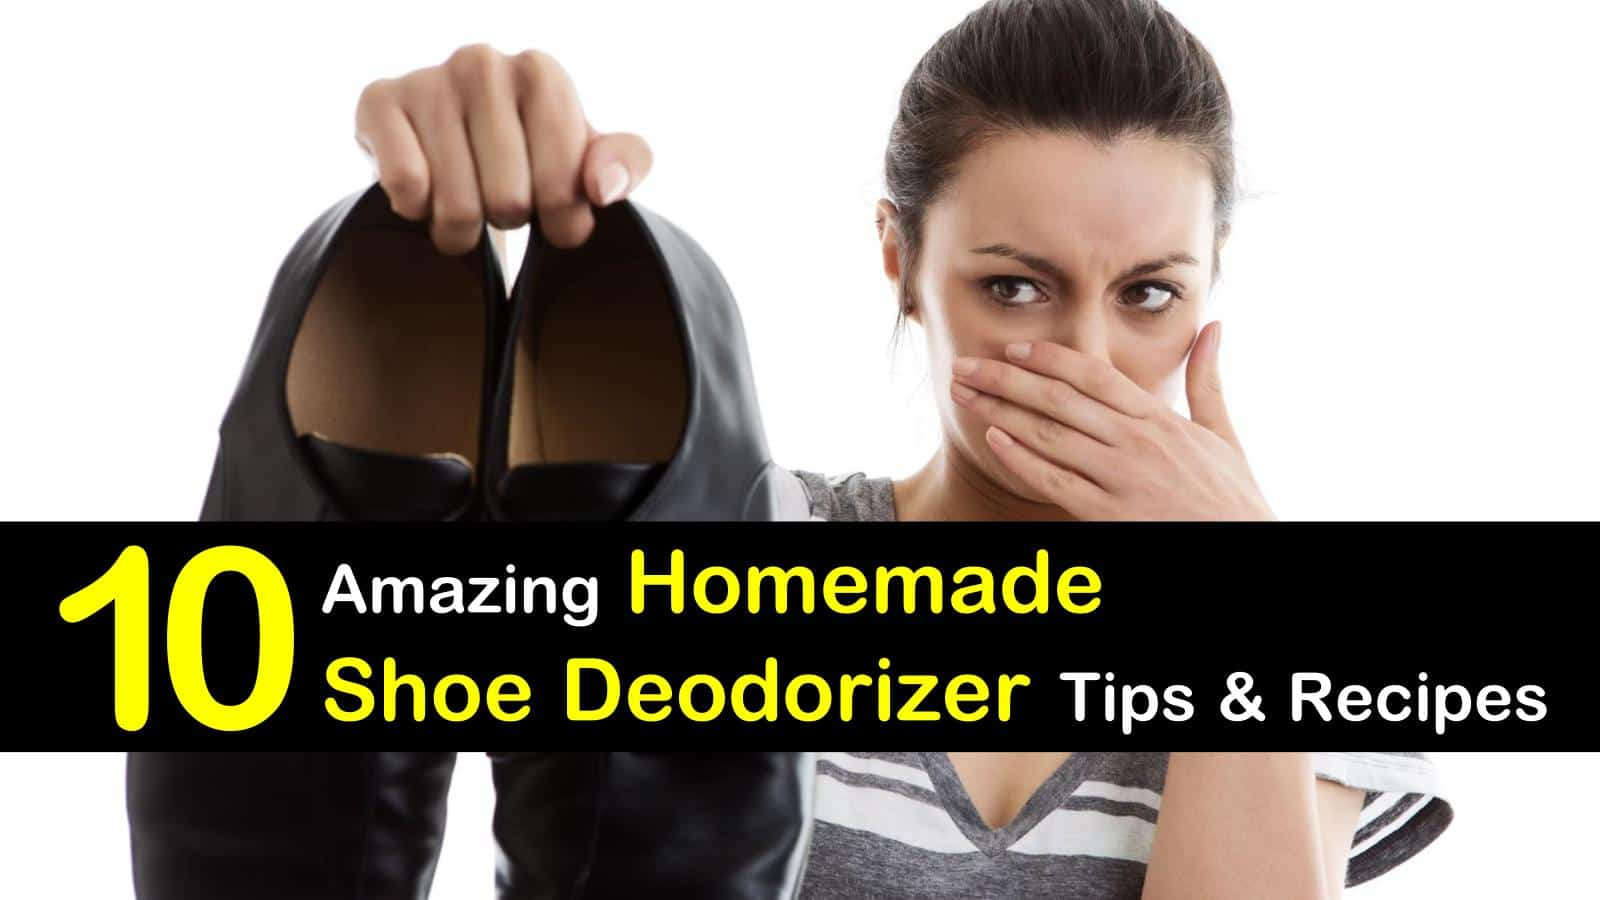 homemade shoe deodorizer titleimg1